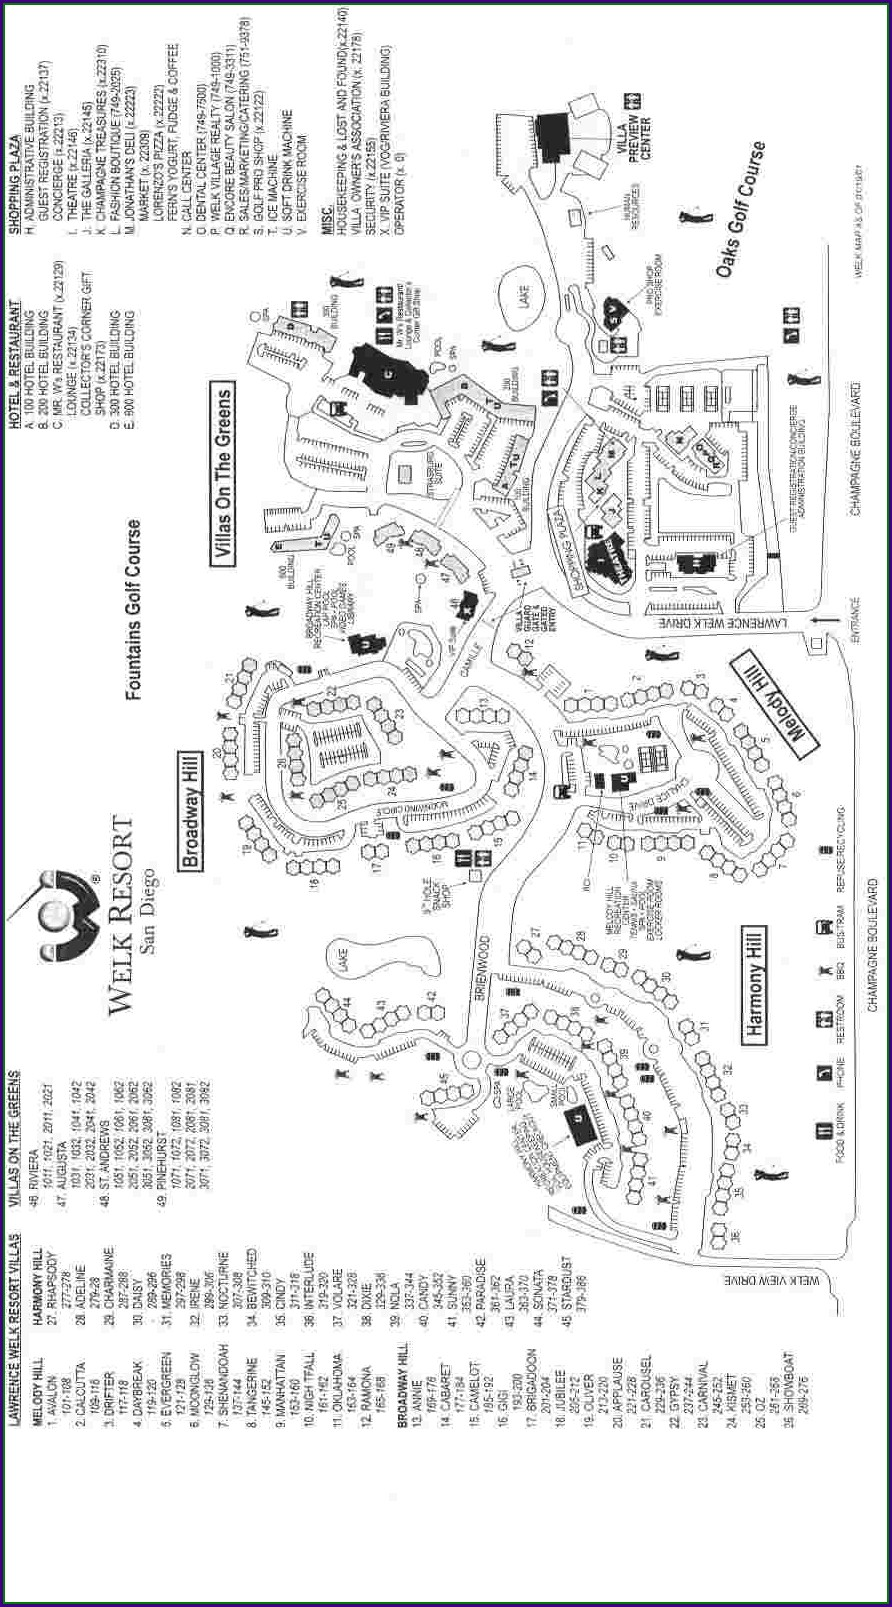 Lawrence Welk Resort Escondido Map